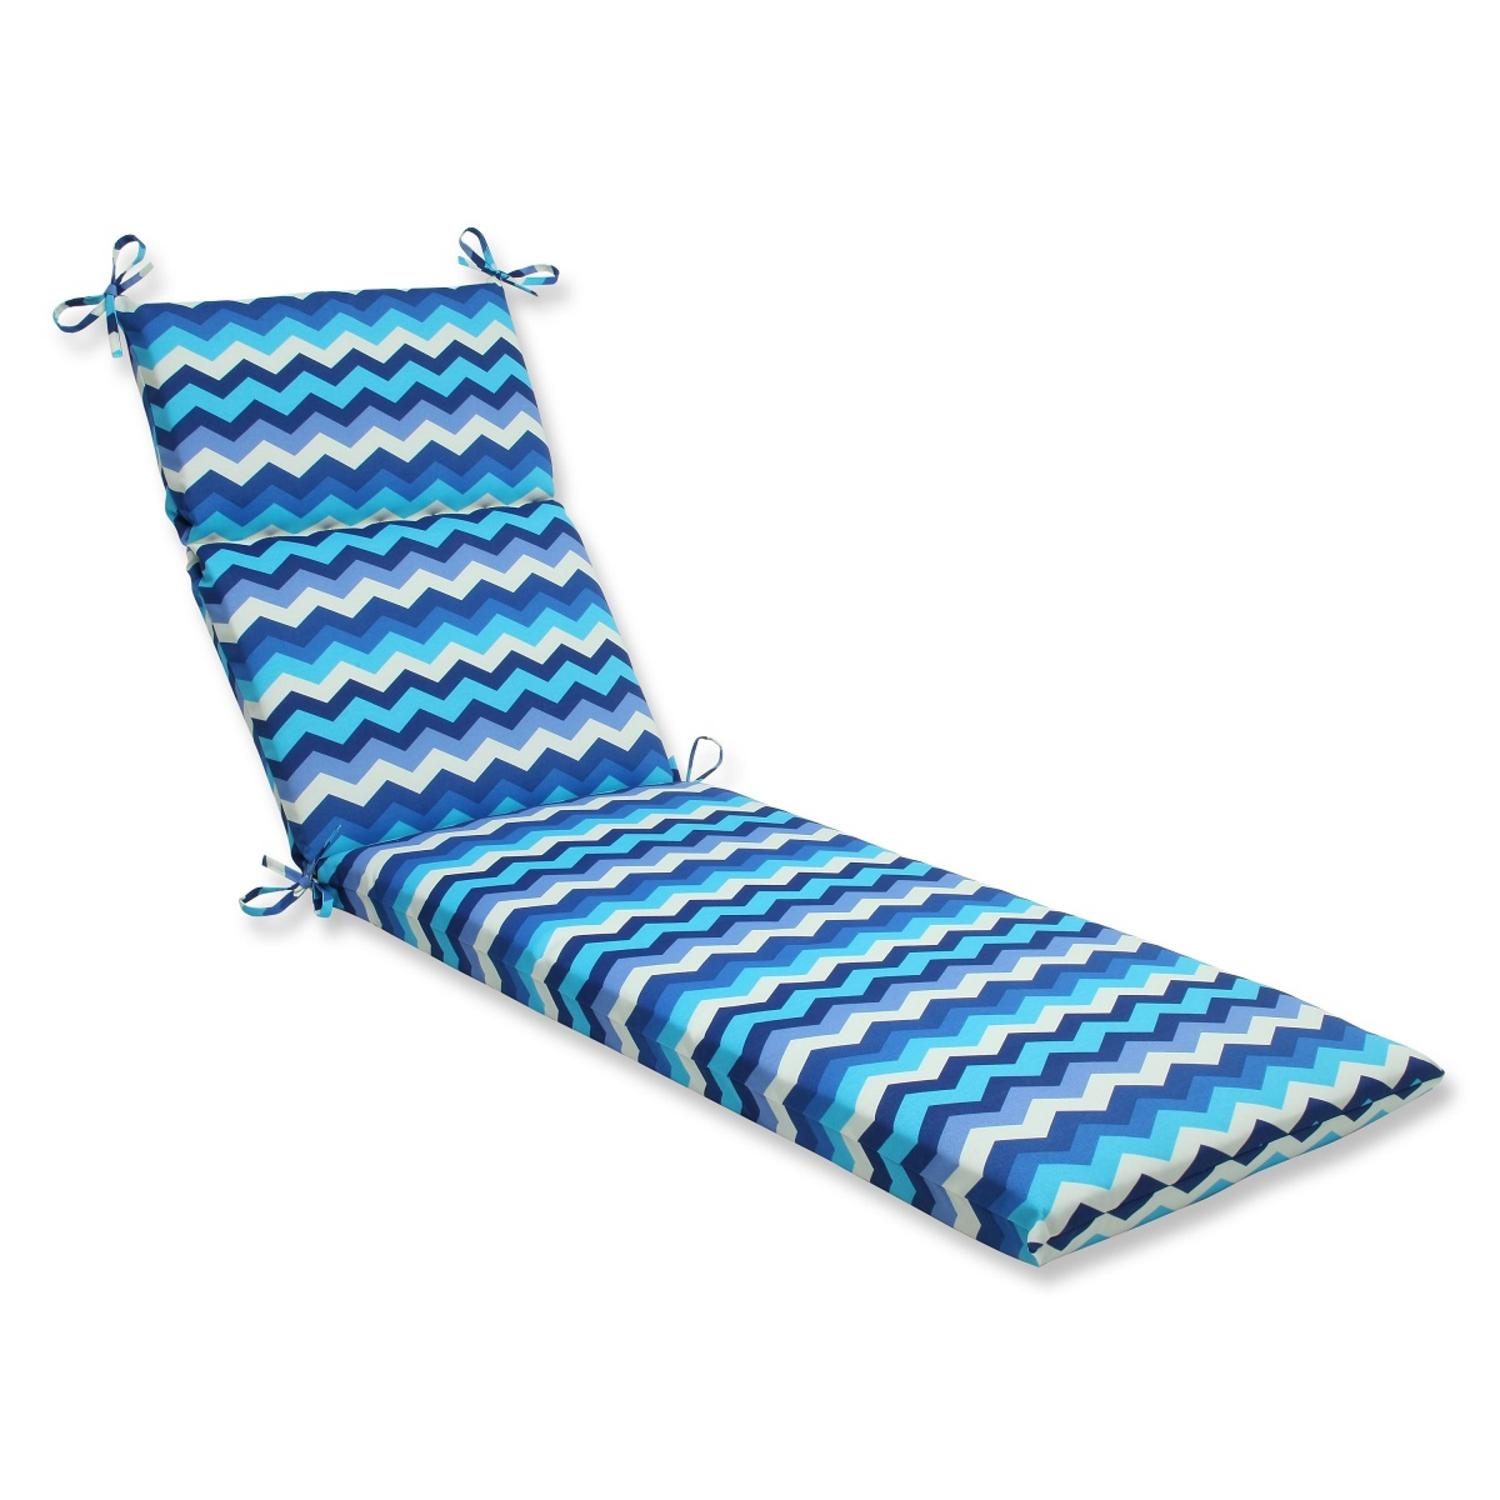 "72.5"" Rayas Azules Blue, Navy and White Chevron Striped Outdoor Patio Chaise Lounge Cushion"